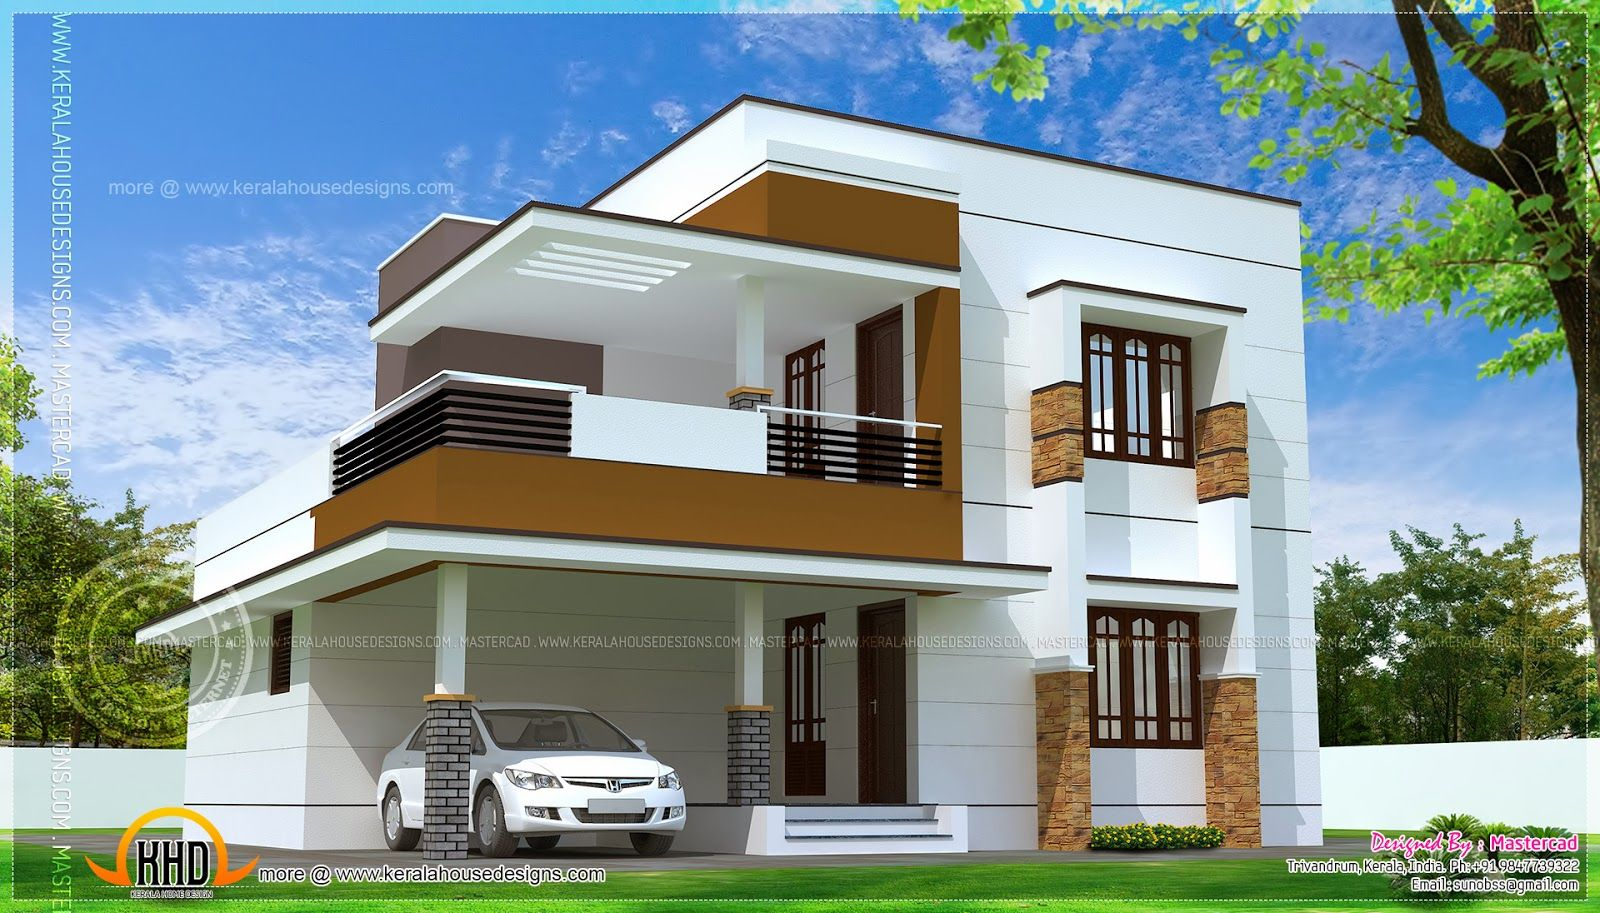 modern house plans erven 500sq m simple modern home design in 1817 square feet - New Contemporary Home Designs